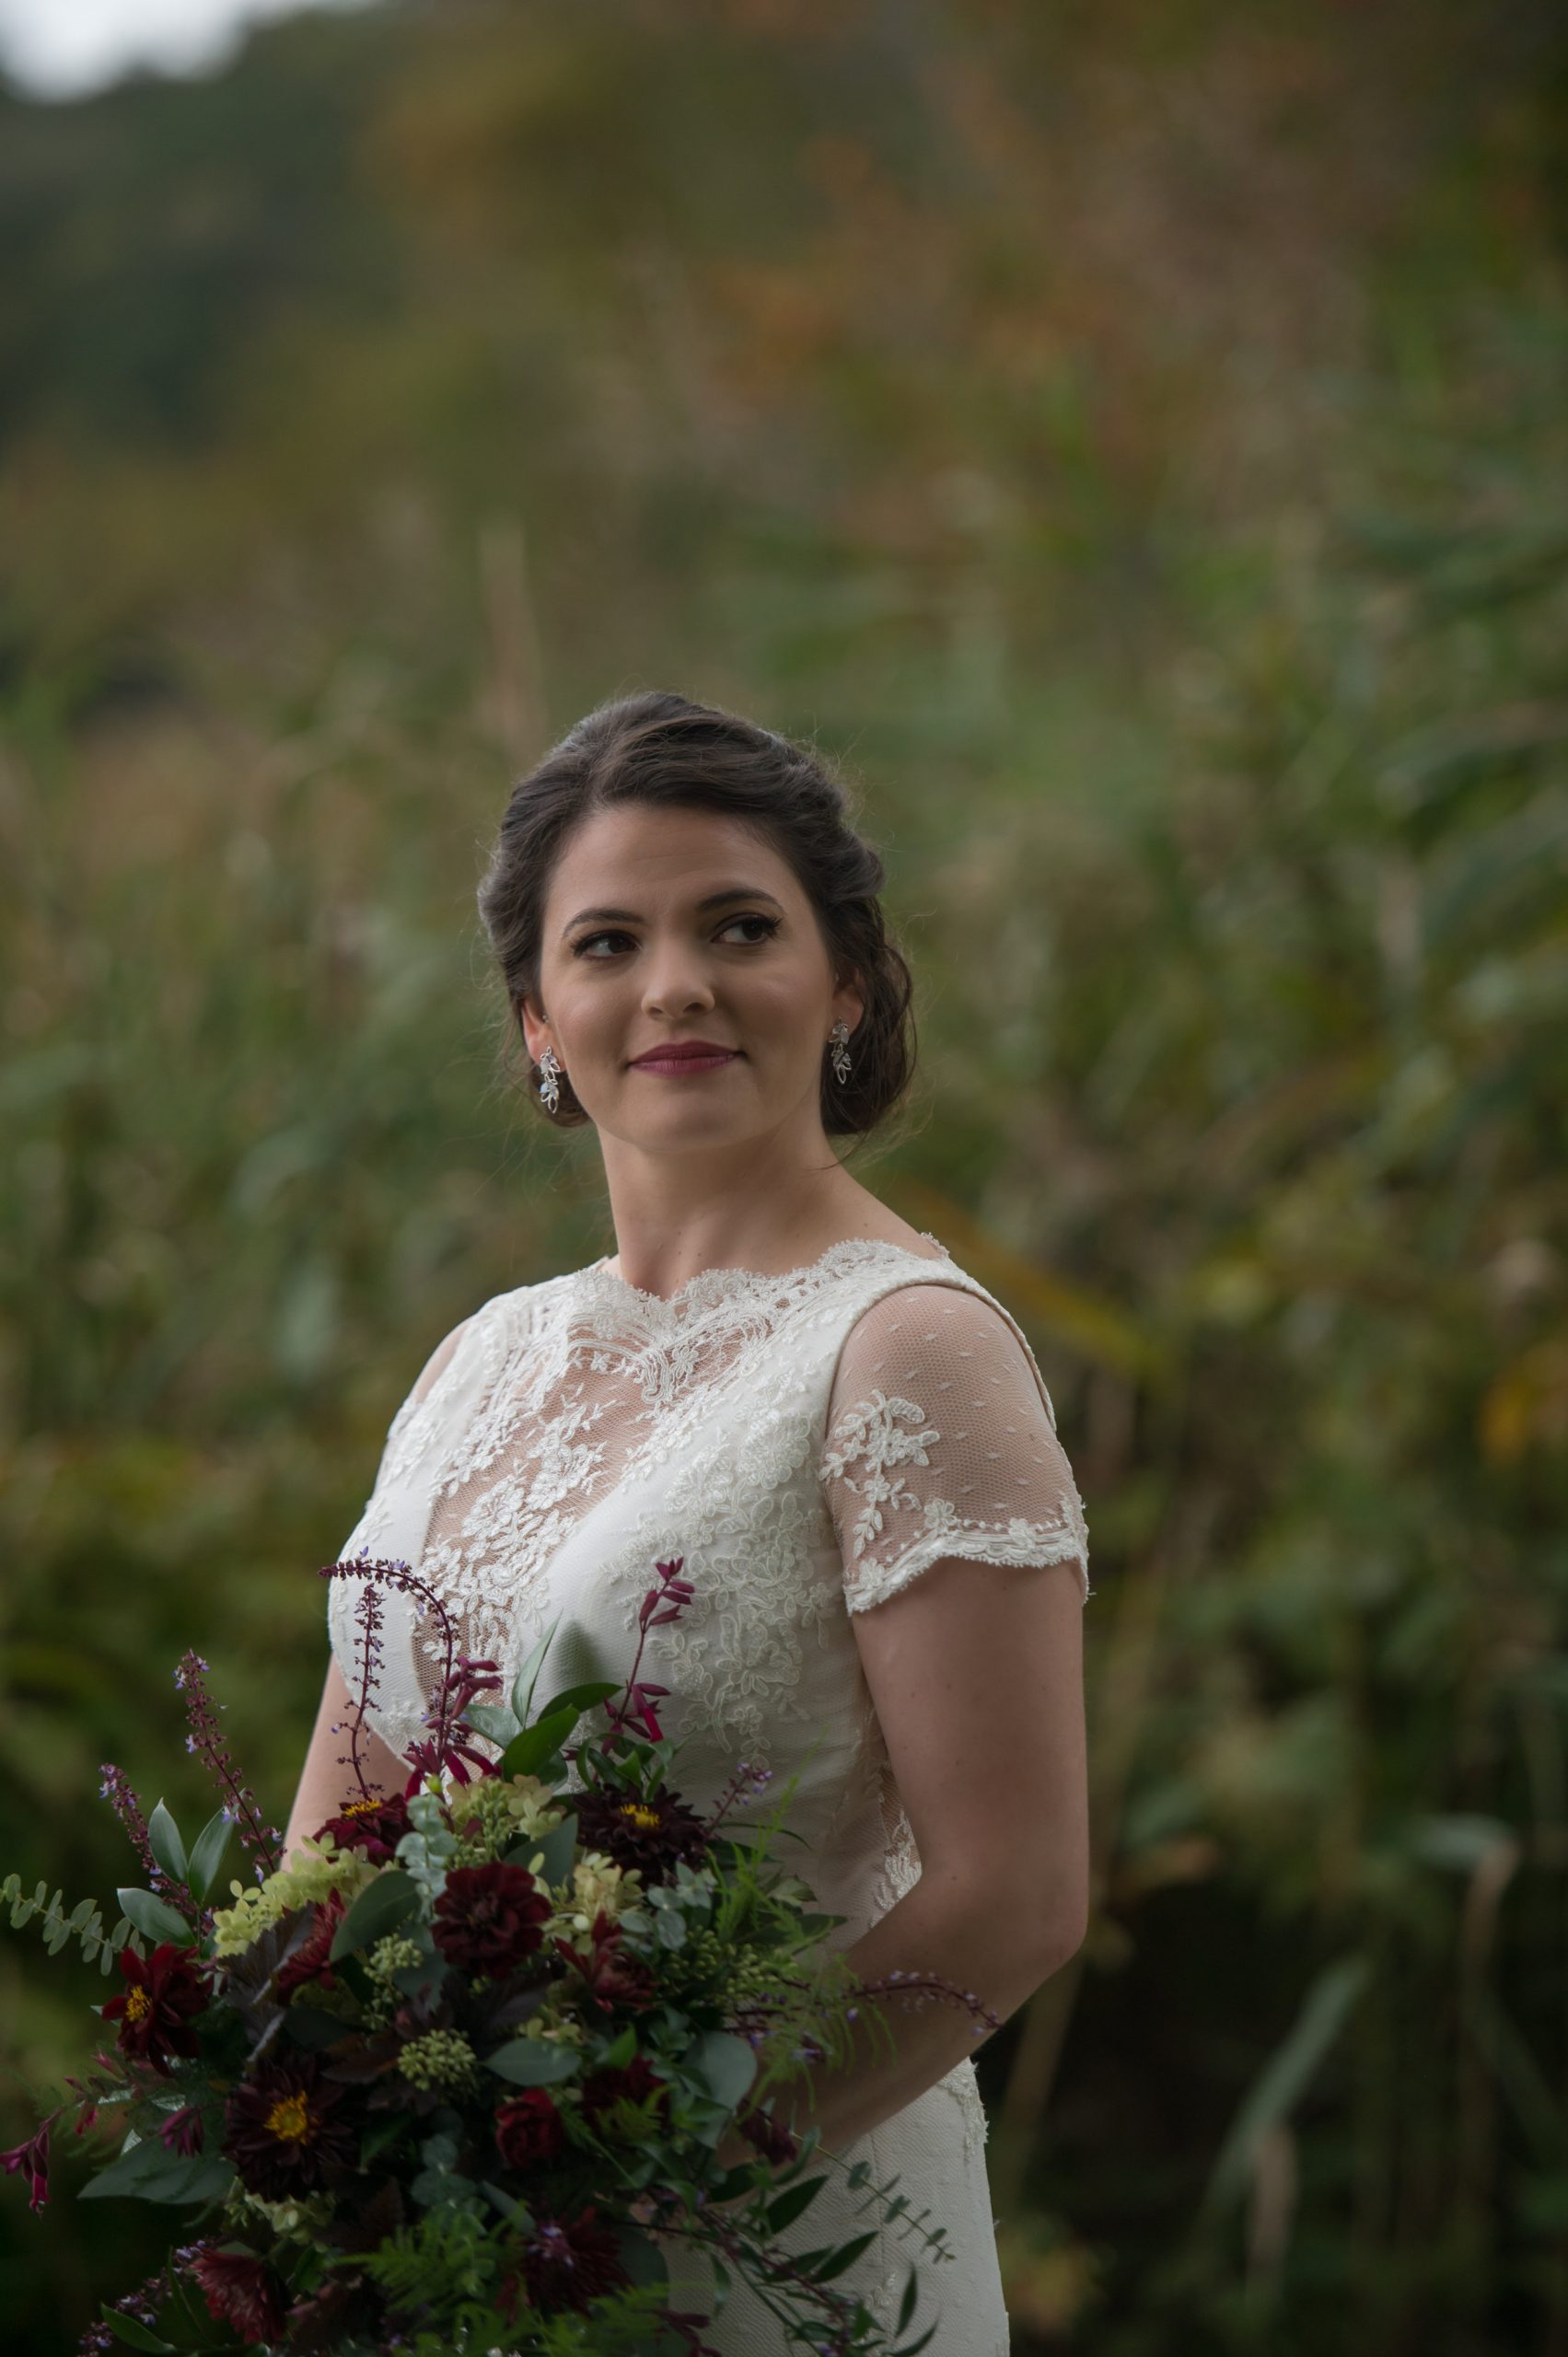 Brianna at The Bee and Thistle Inn – Old Lyme, CT